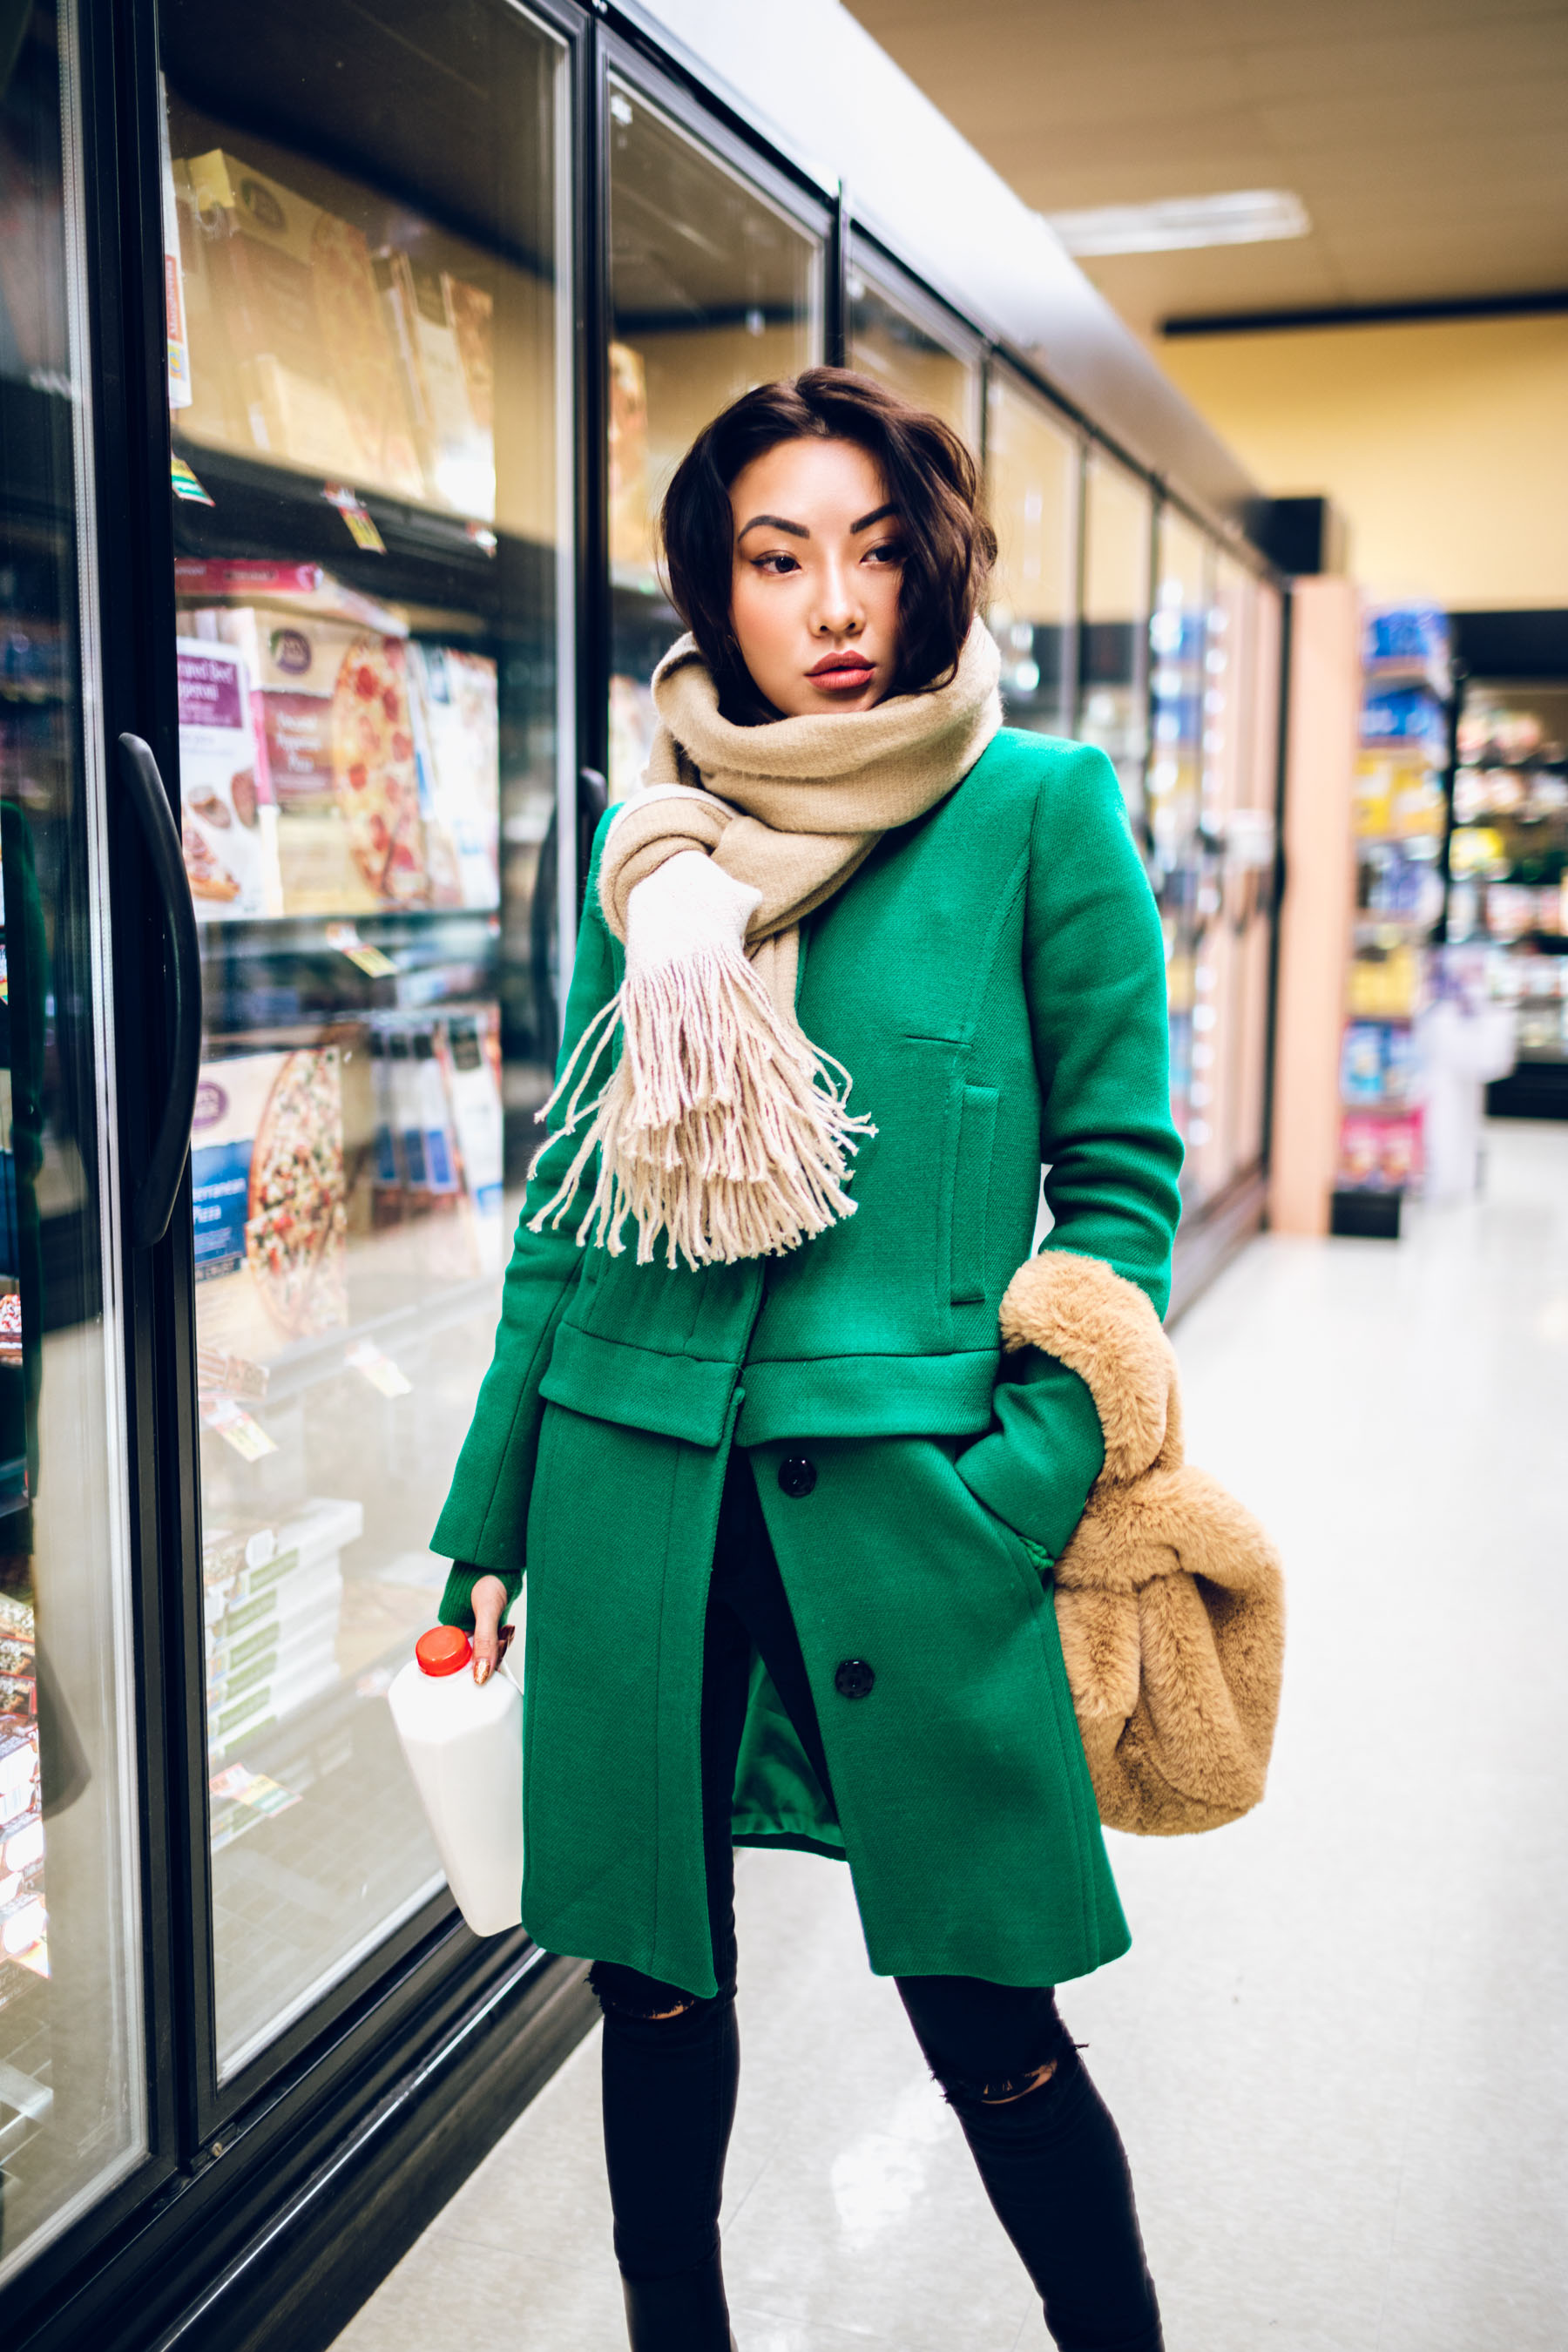 Instagram Outfits Round Up // Notjessfashion.com // Cozy Layered looks, jessica wang, fashion blogger, new york fashion blogger, street style fashion, ootd, asian blogger, green coat, statement coat, wrapped scarf, cozy winter looks, fur handbag, lifestyle portrait